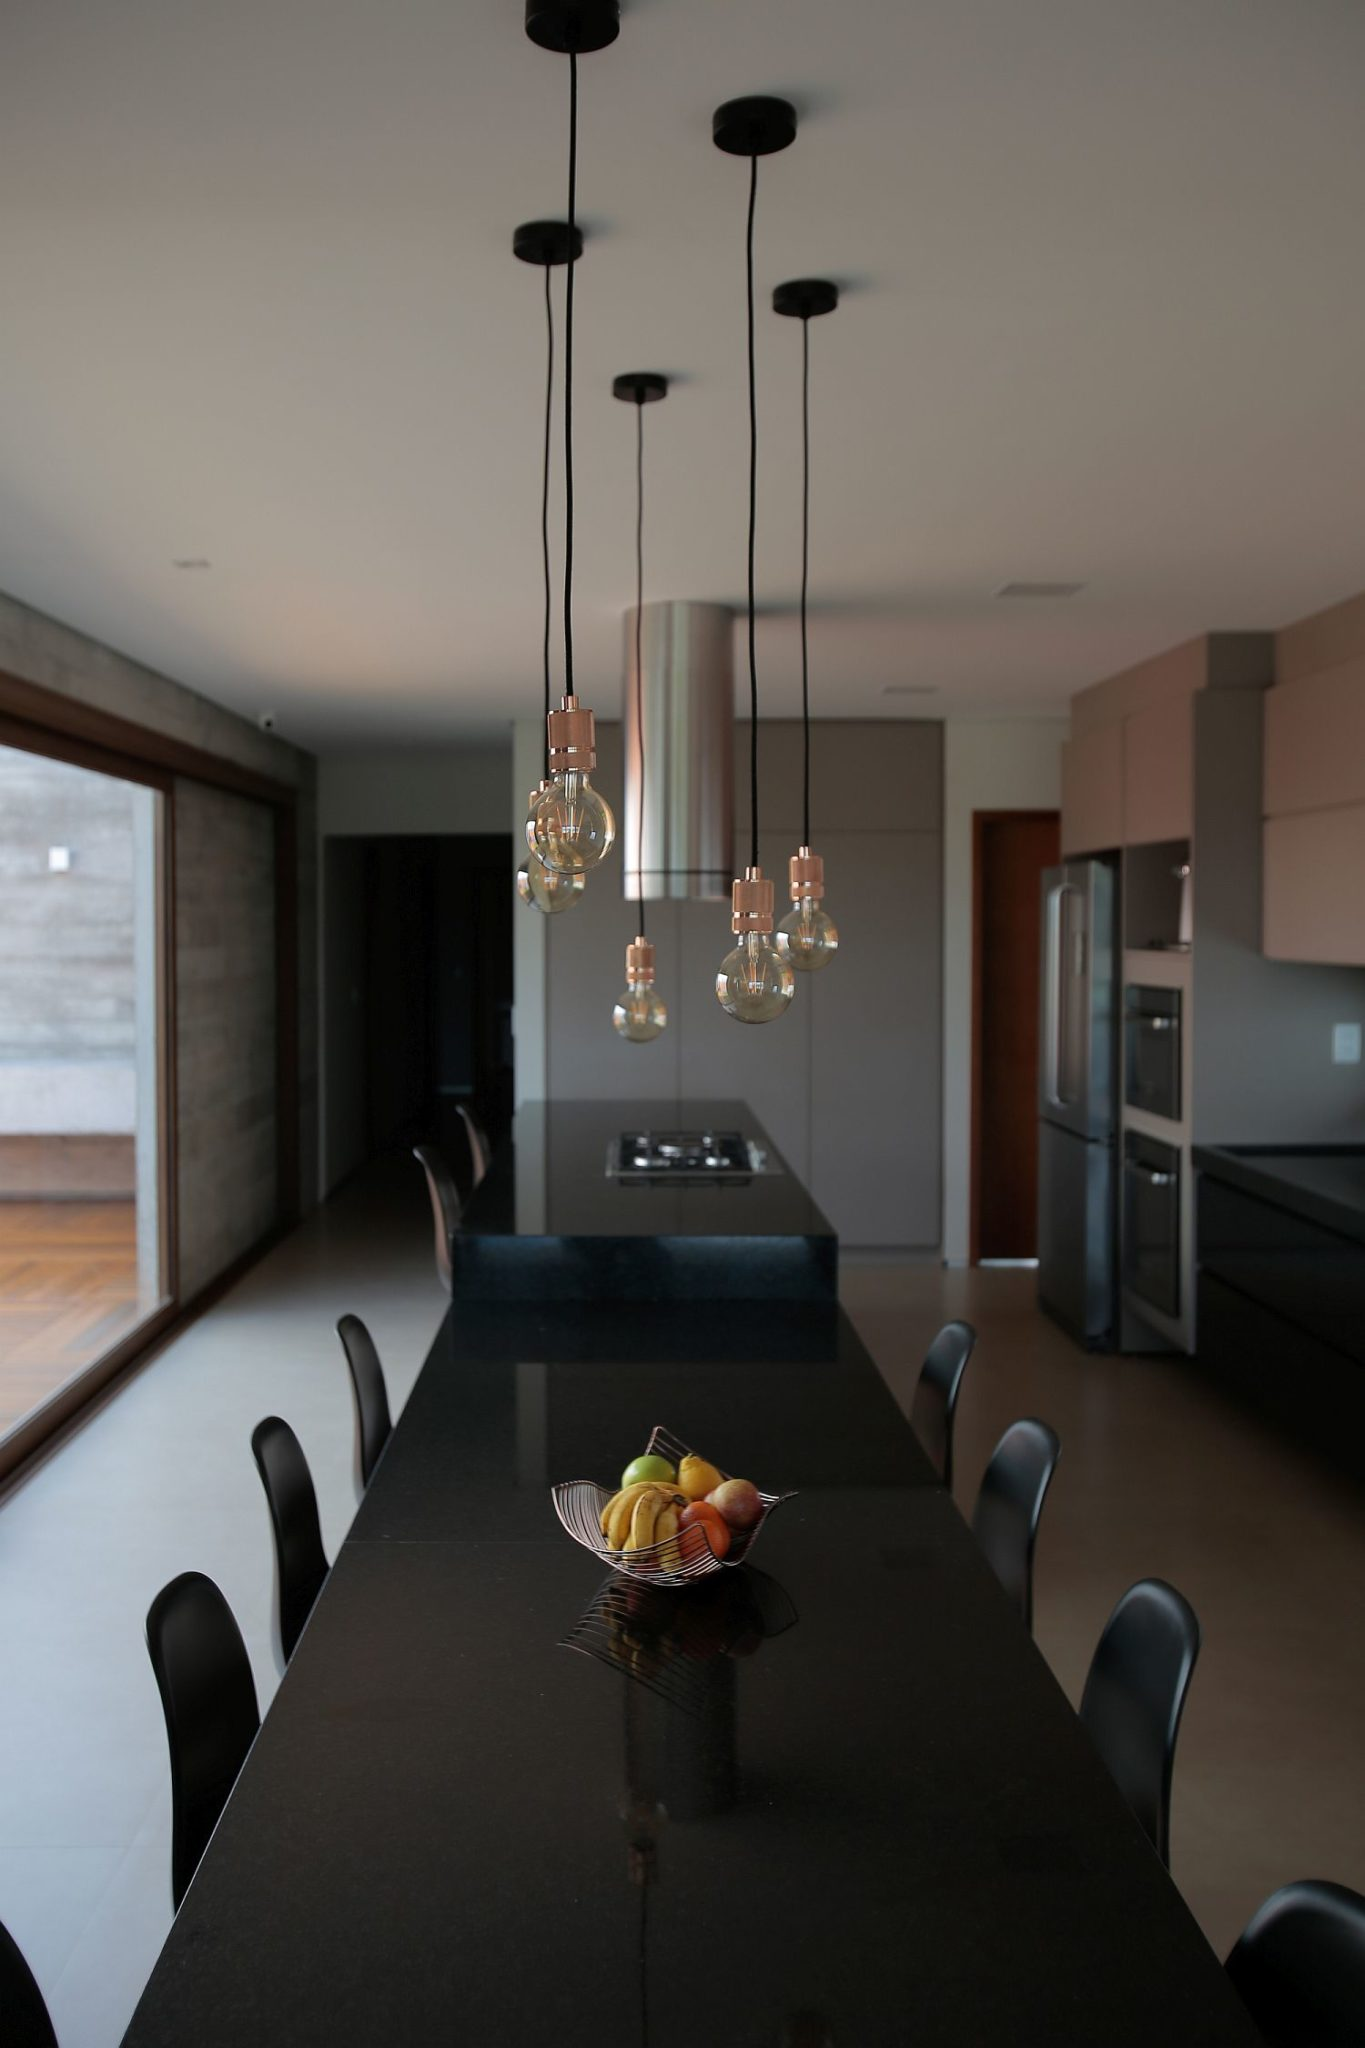 Black countertops add style to the kitchen and dining